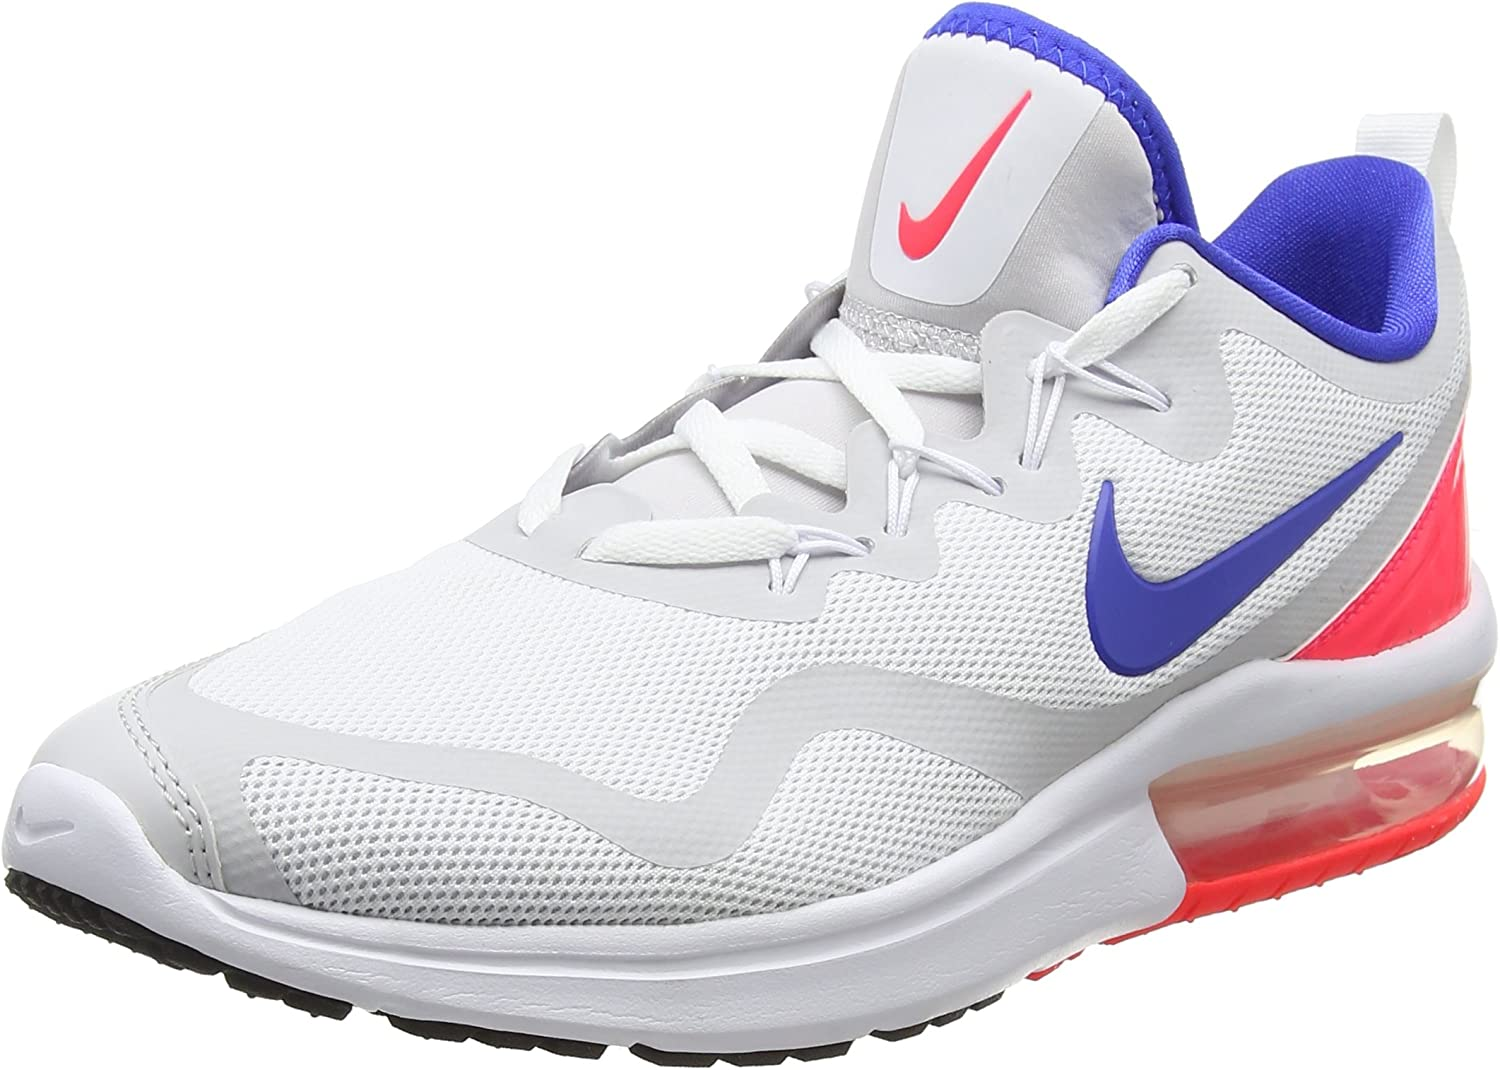 Nike Air Max Fury, Chaussures de Running Compétition Homme